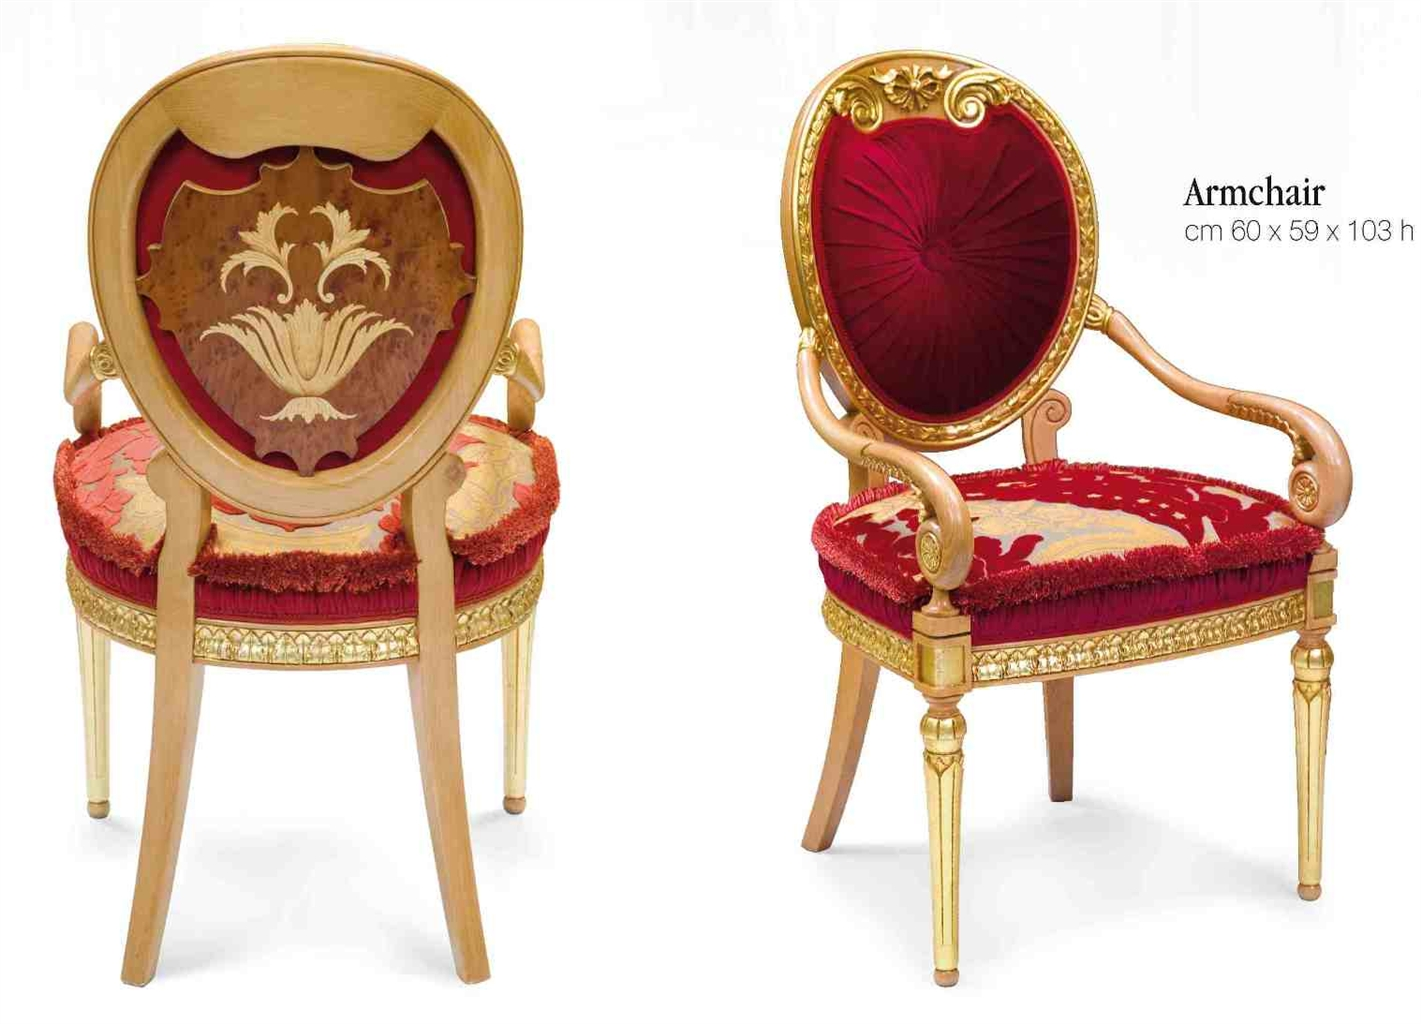 Luxury handmade furniture imported from europe many sizes for Custom made furniture